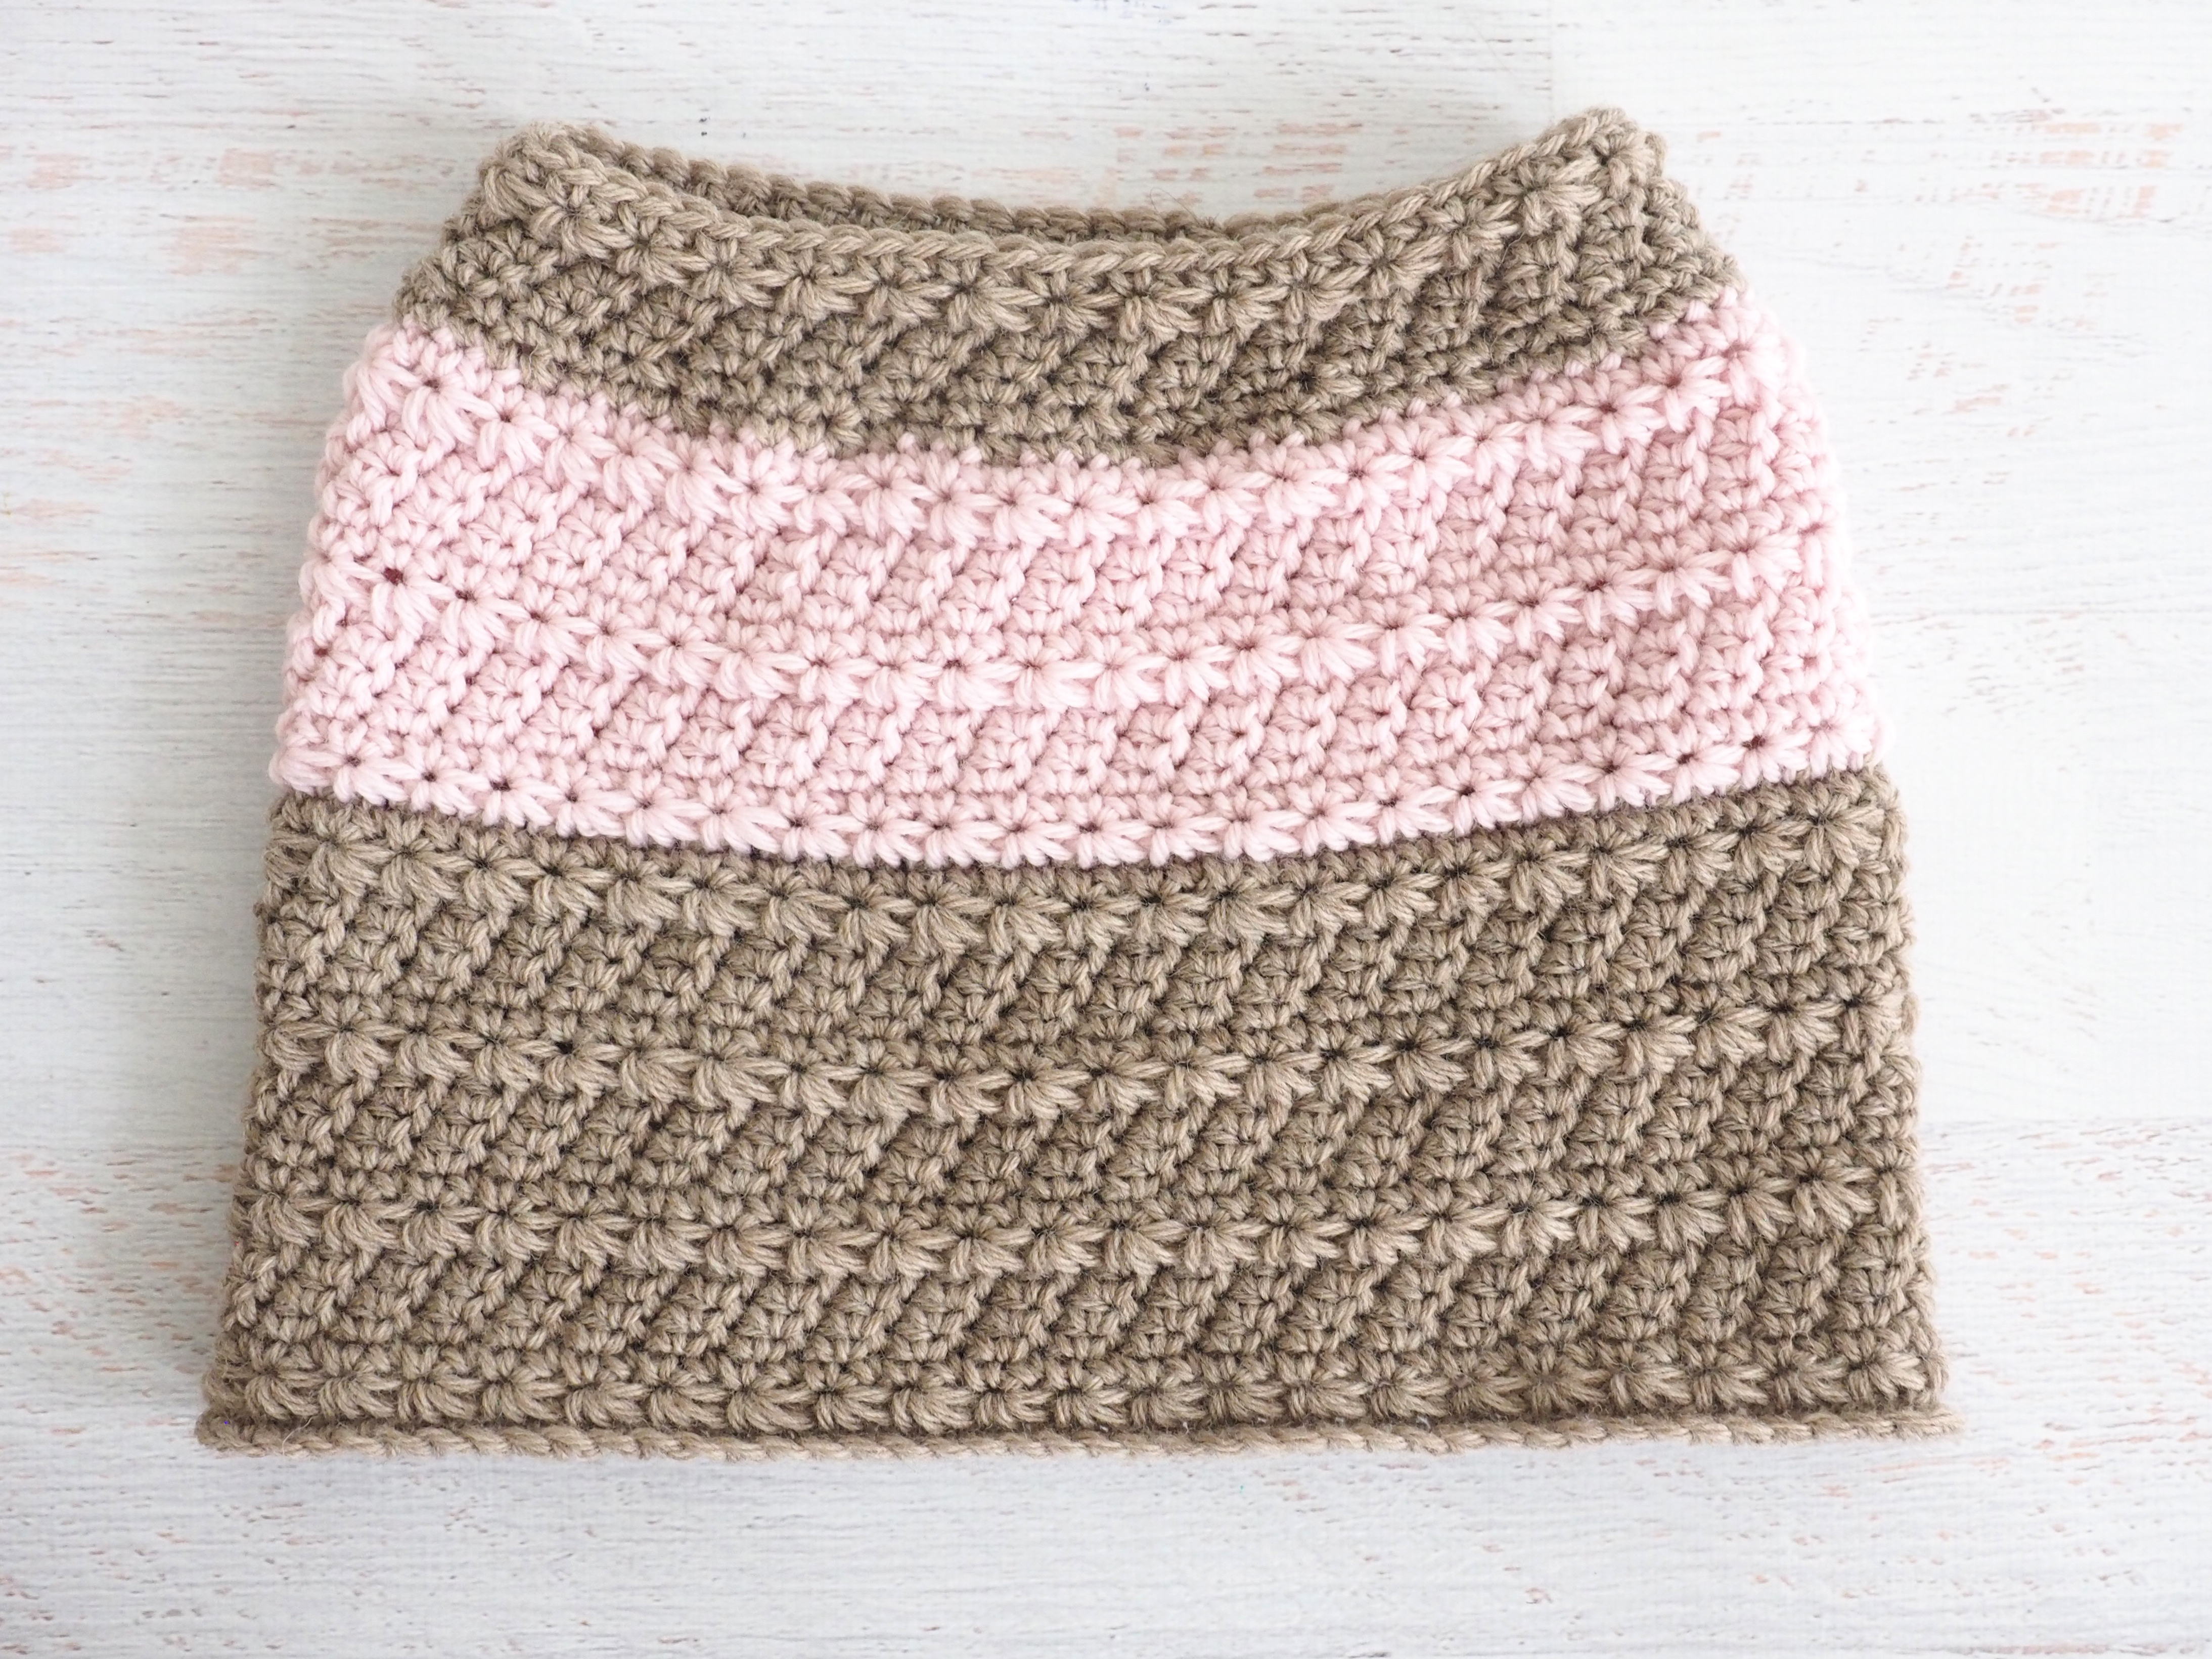 Star Stitch Neck Warmer - Free Crochet Pattern - Stitch11